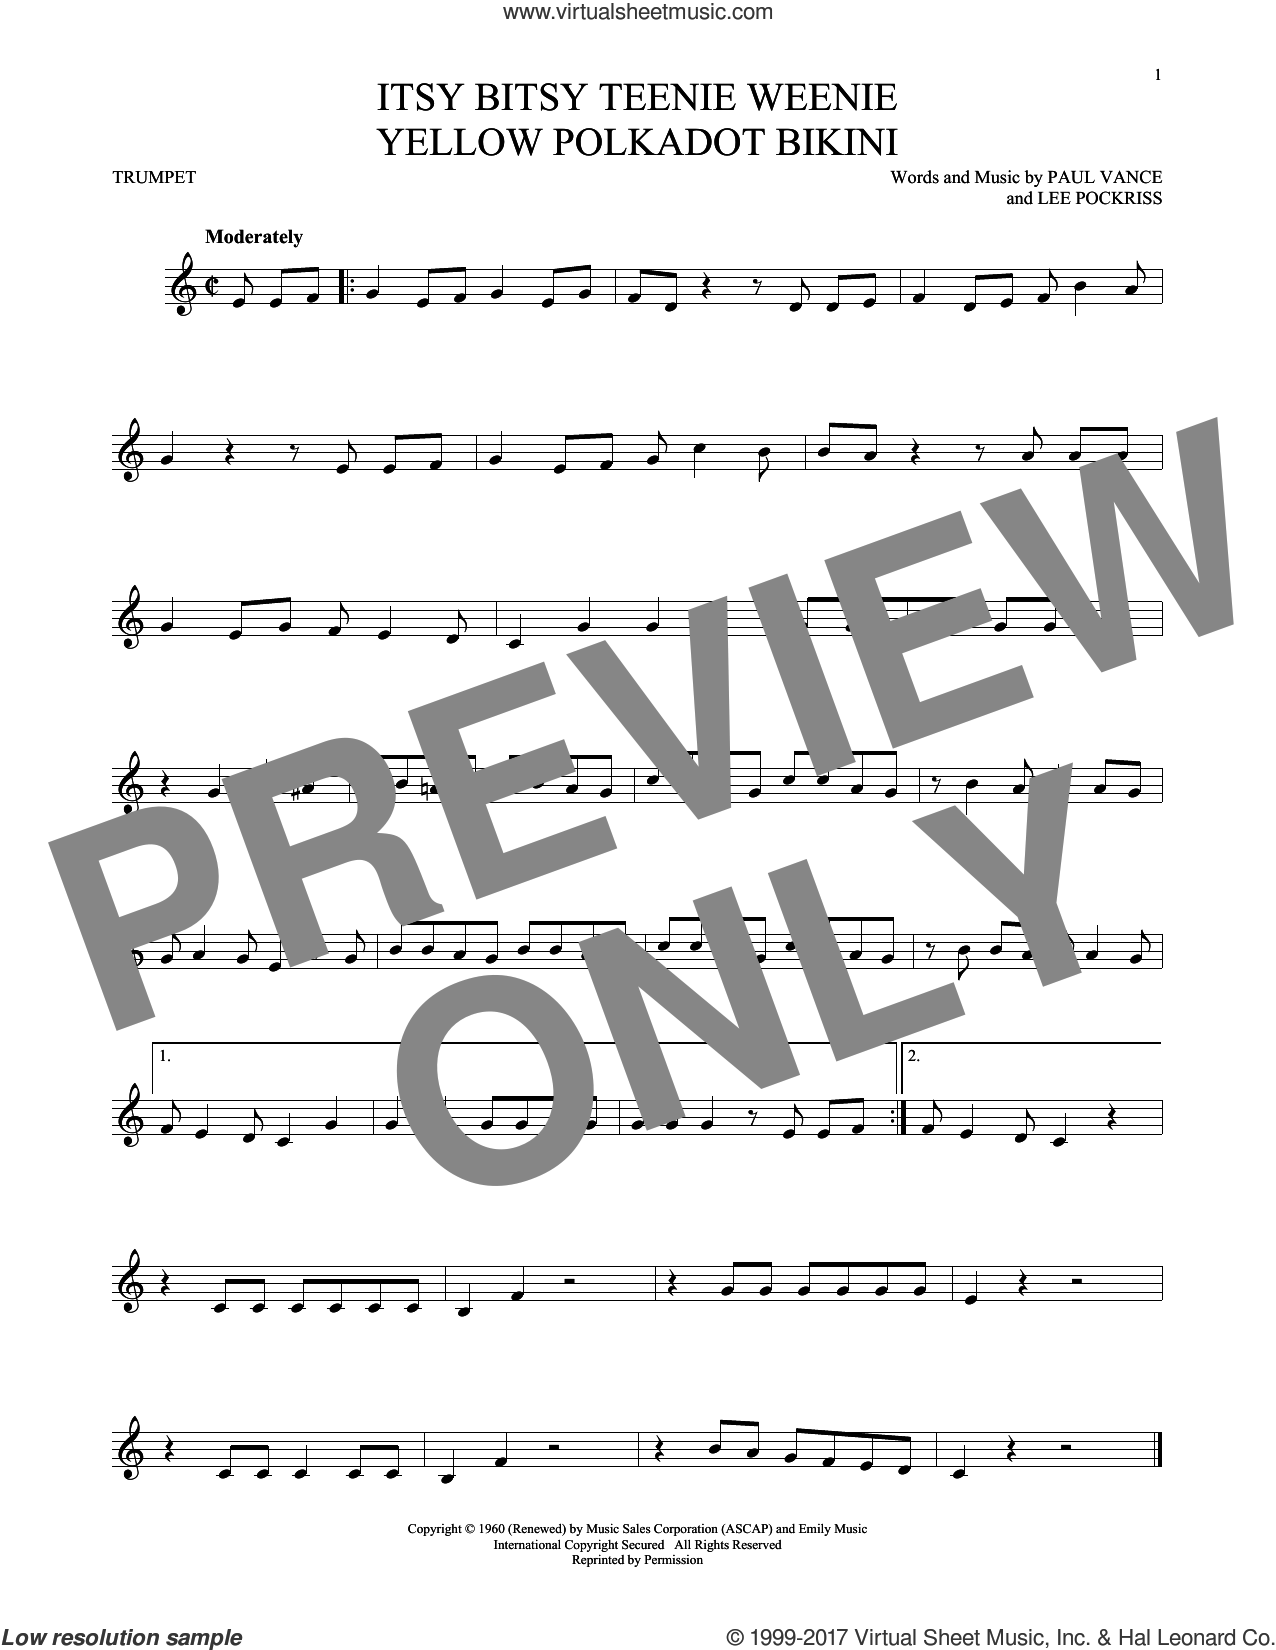 Itsy Bitsy Teenie Weenie Yellow Polkadot Bikini sheet music for trumpet solo by Brian Hyland, Lee Pockriss and Paul Vance, intermediate skill level